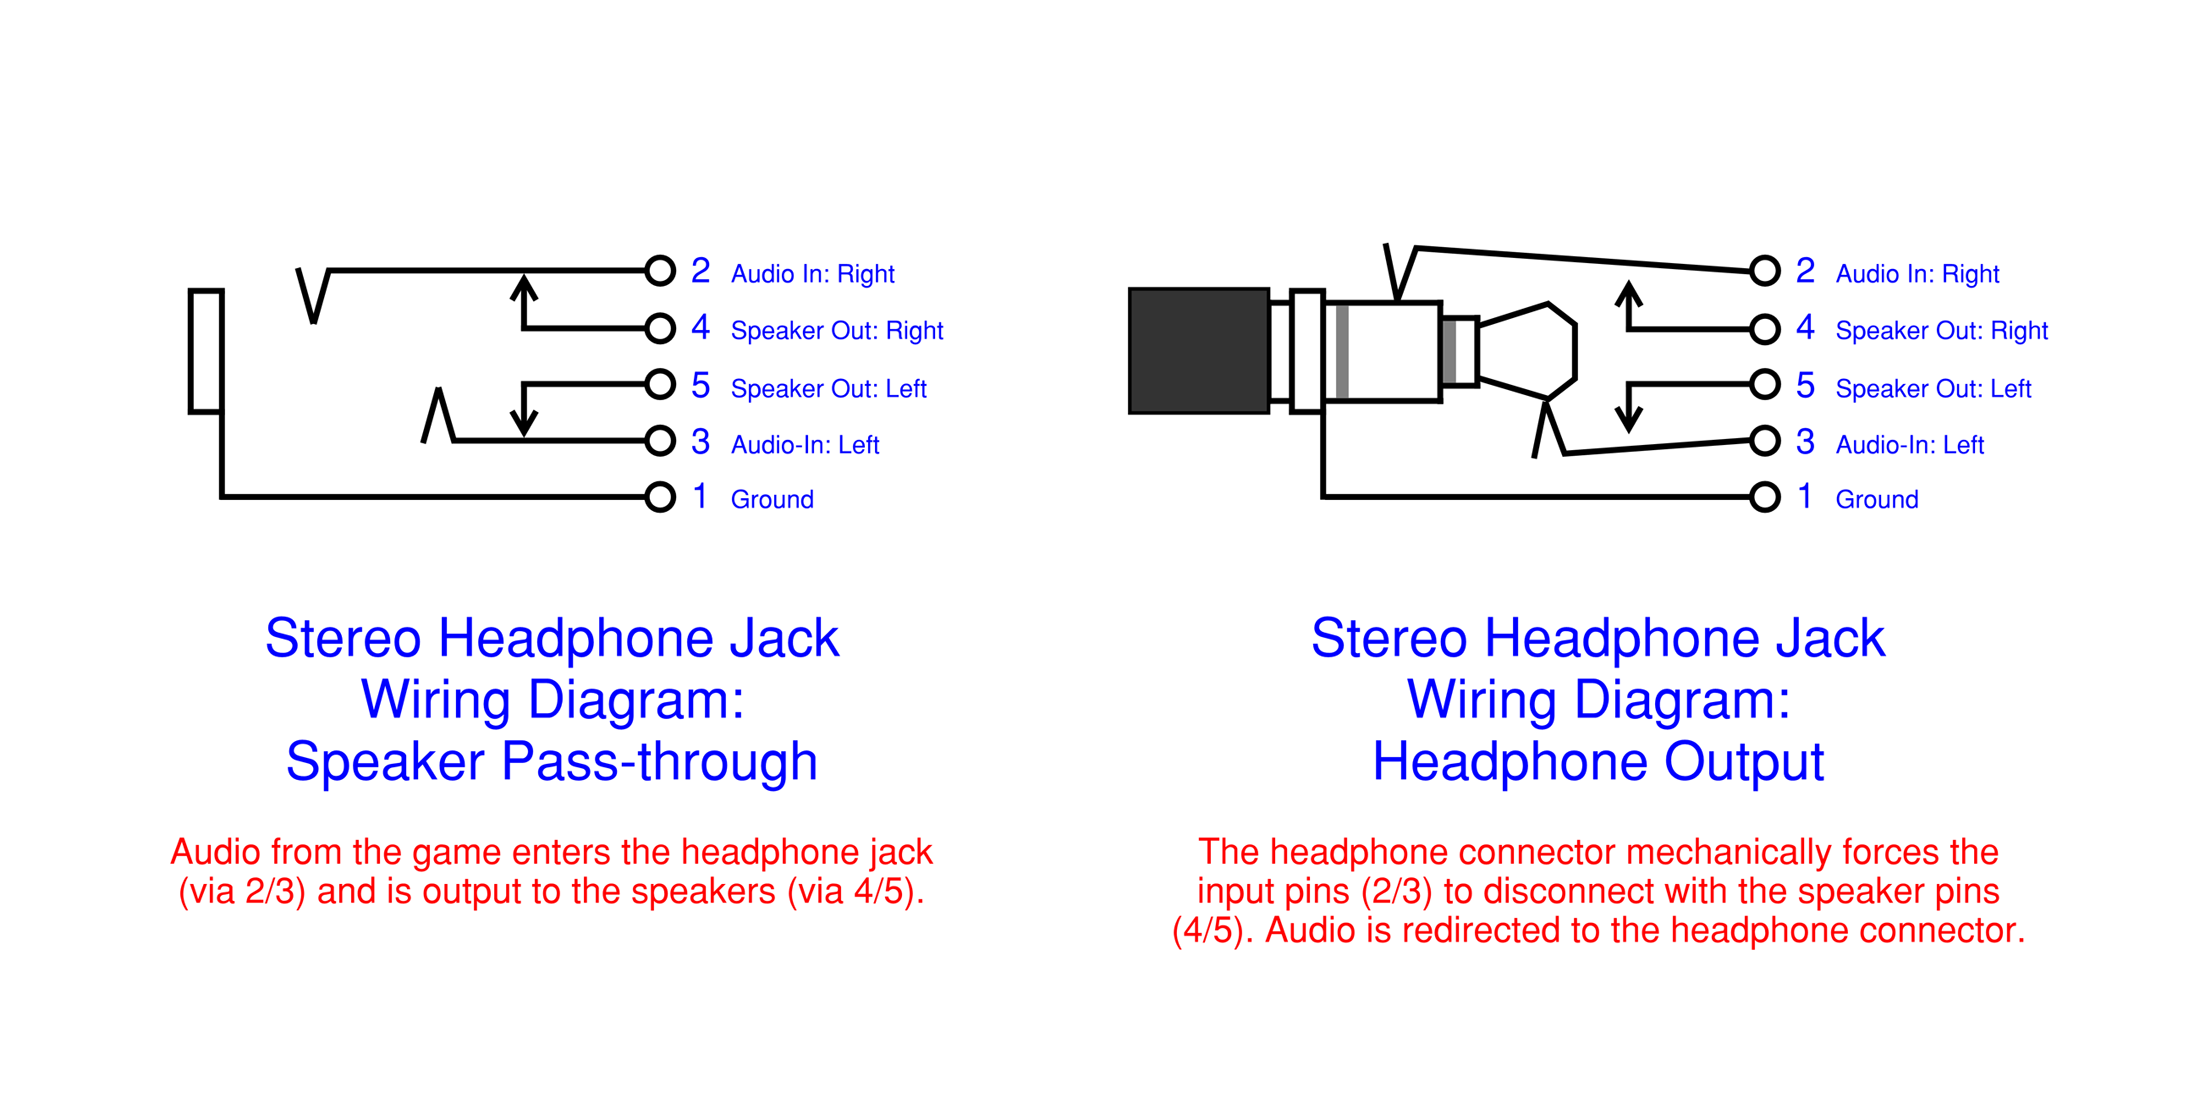 Oregon Trail Handheld Mod The Oregonboy Wr Labs Wiring 2 Speakers To Headphone Diagram When Theyre Wired Inline With A Speaker Inserting Removing Plug Will Physically Disconnect Reconnect And Thus External Audio